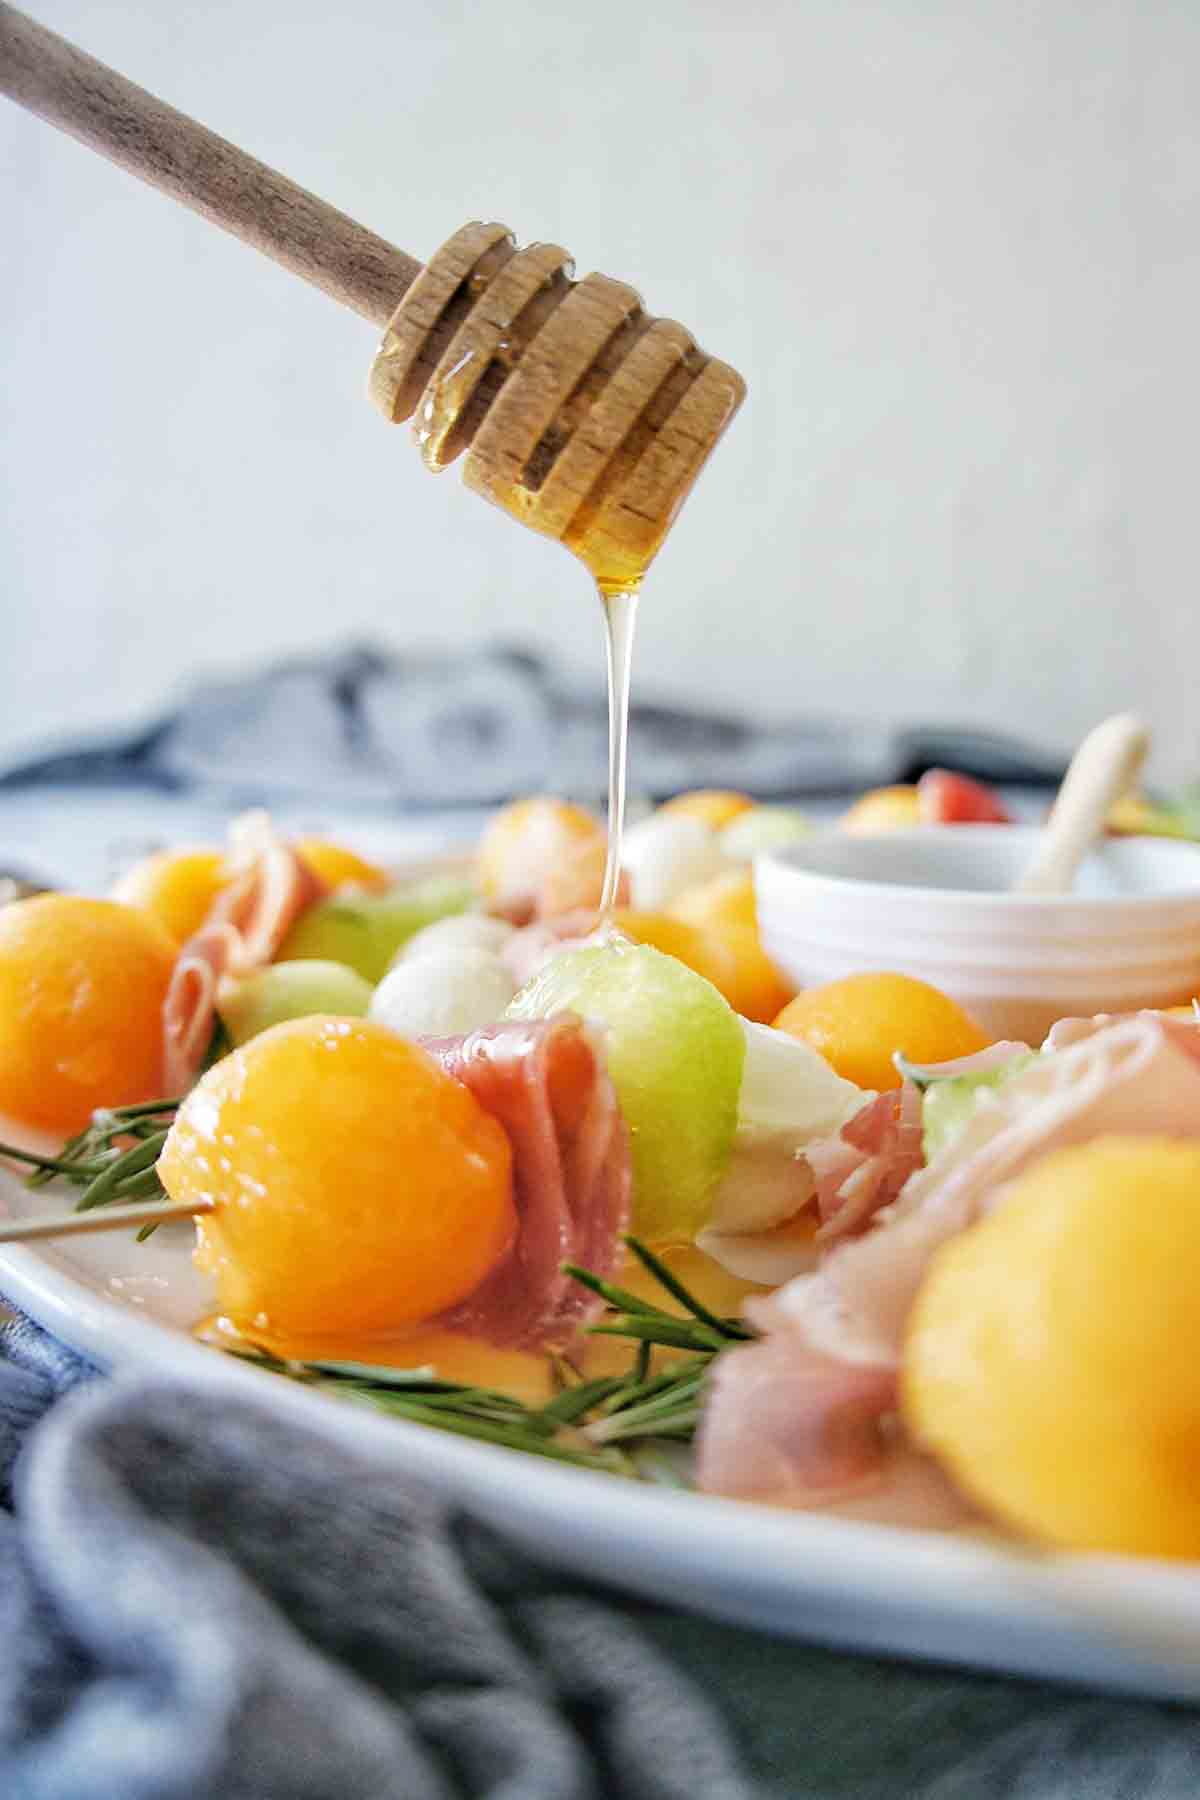 Honey being drizzled over Melon and Prosciutto skewers